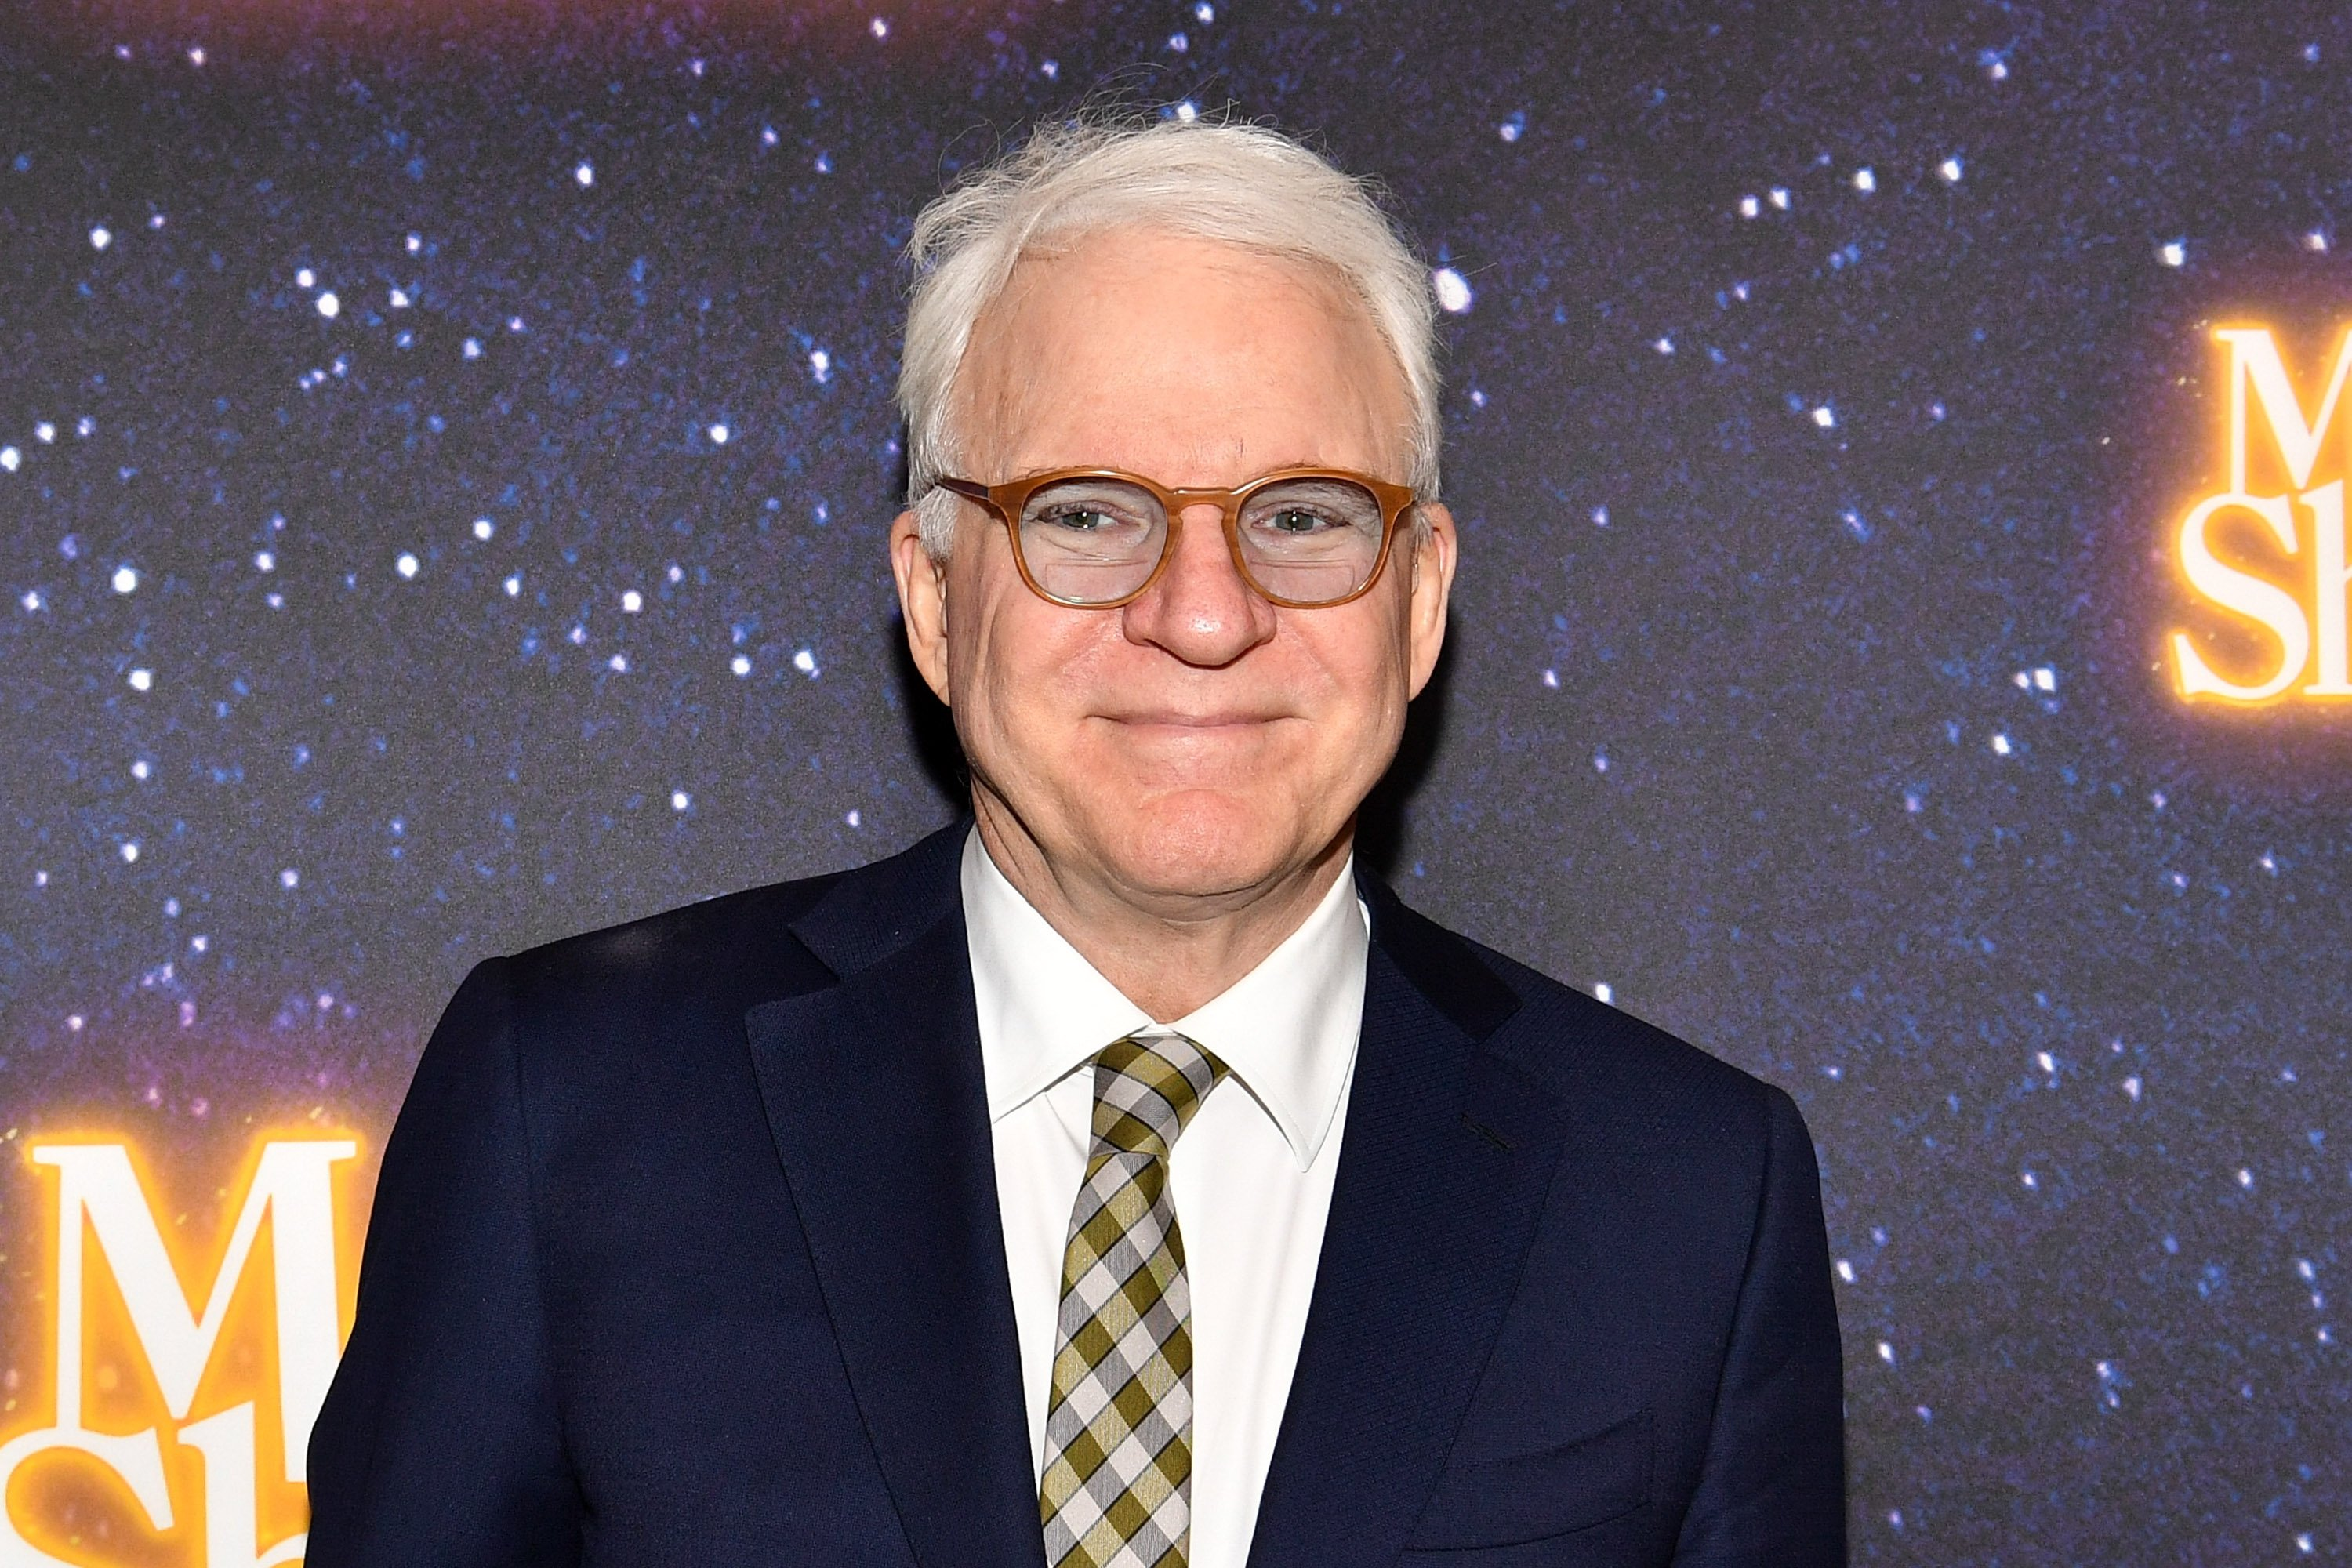 """Steve martin pictured at the """"Meteor Shower"""" Broadway Opening Night at the Booth Theatre, November 2017 in New York City. 